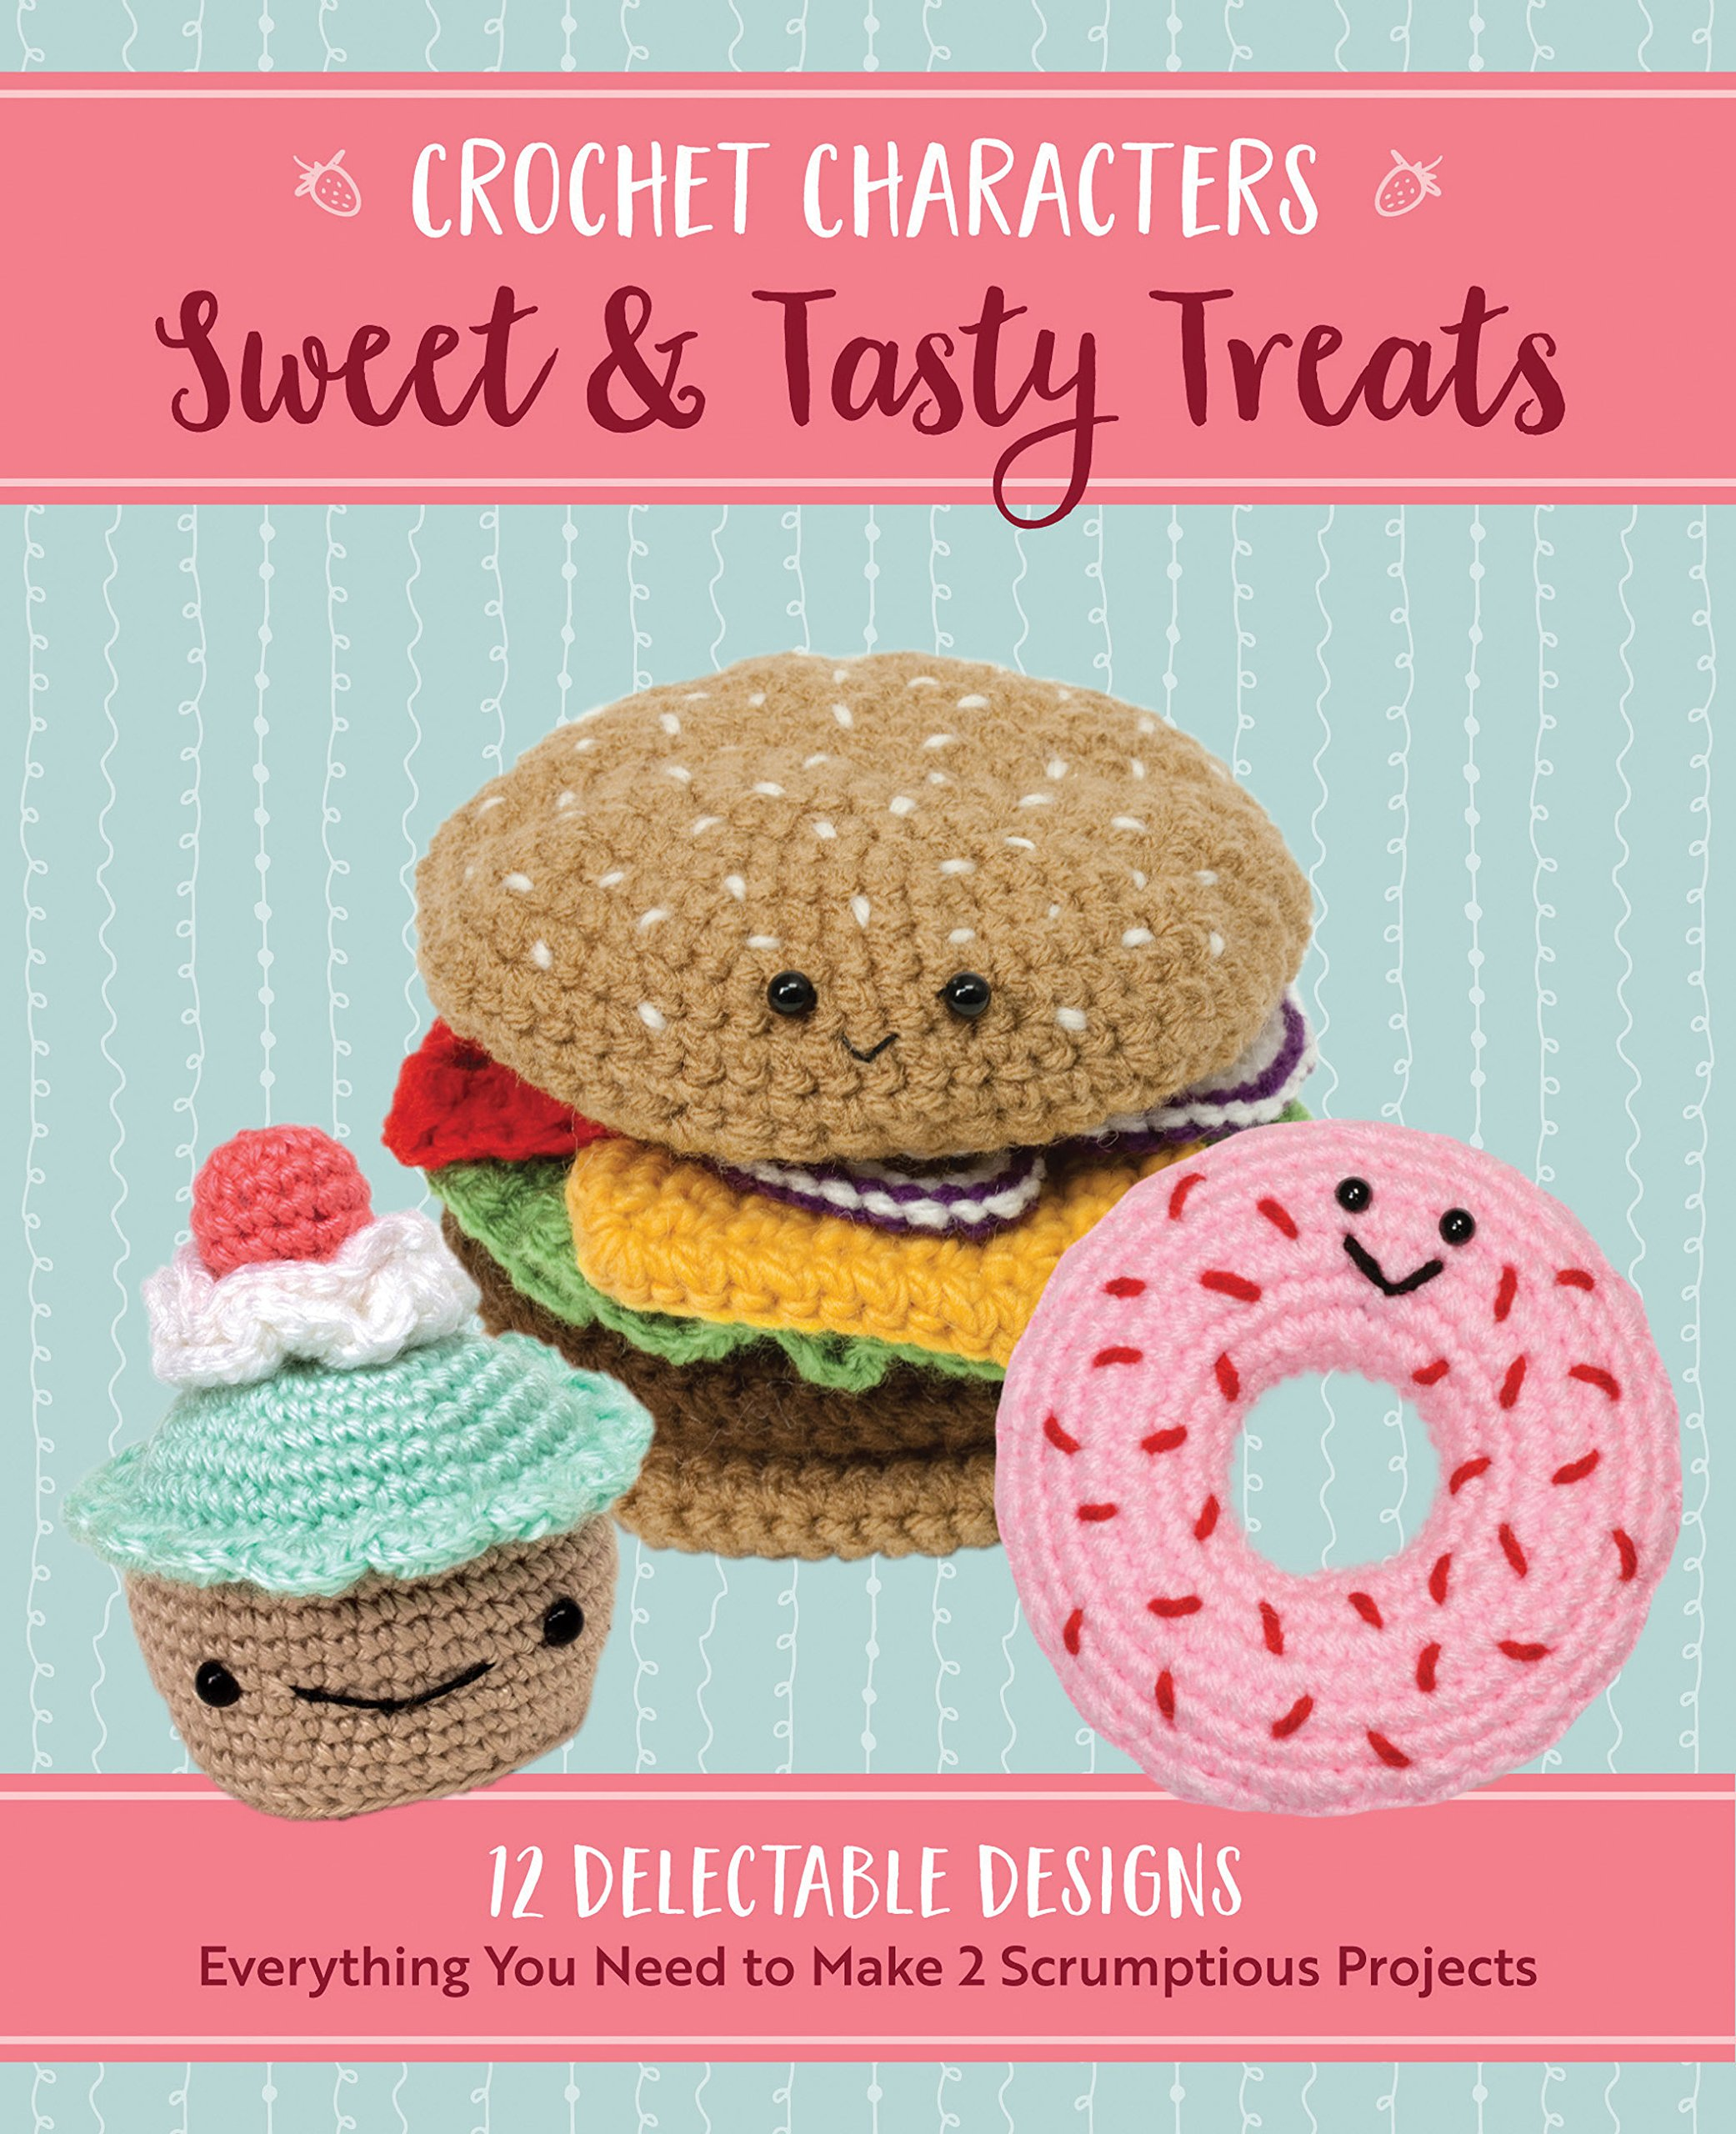 Crochet Characters Sweet & Tasty Treats: 12 Delectable Designs, Everything You Need to Make 2 Scrumptious Projects pdf epub